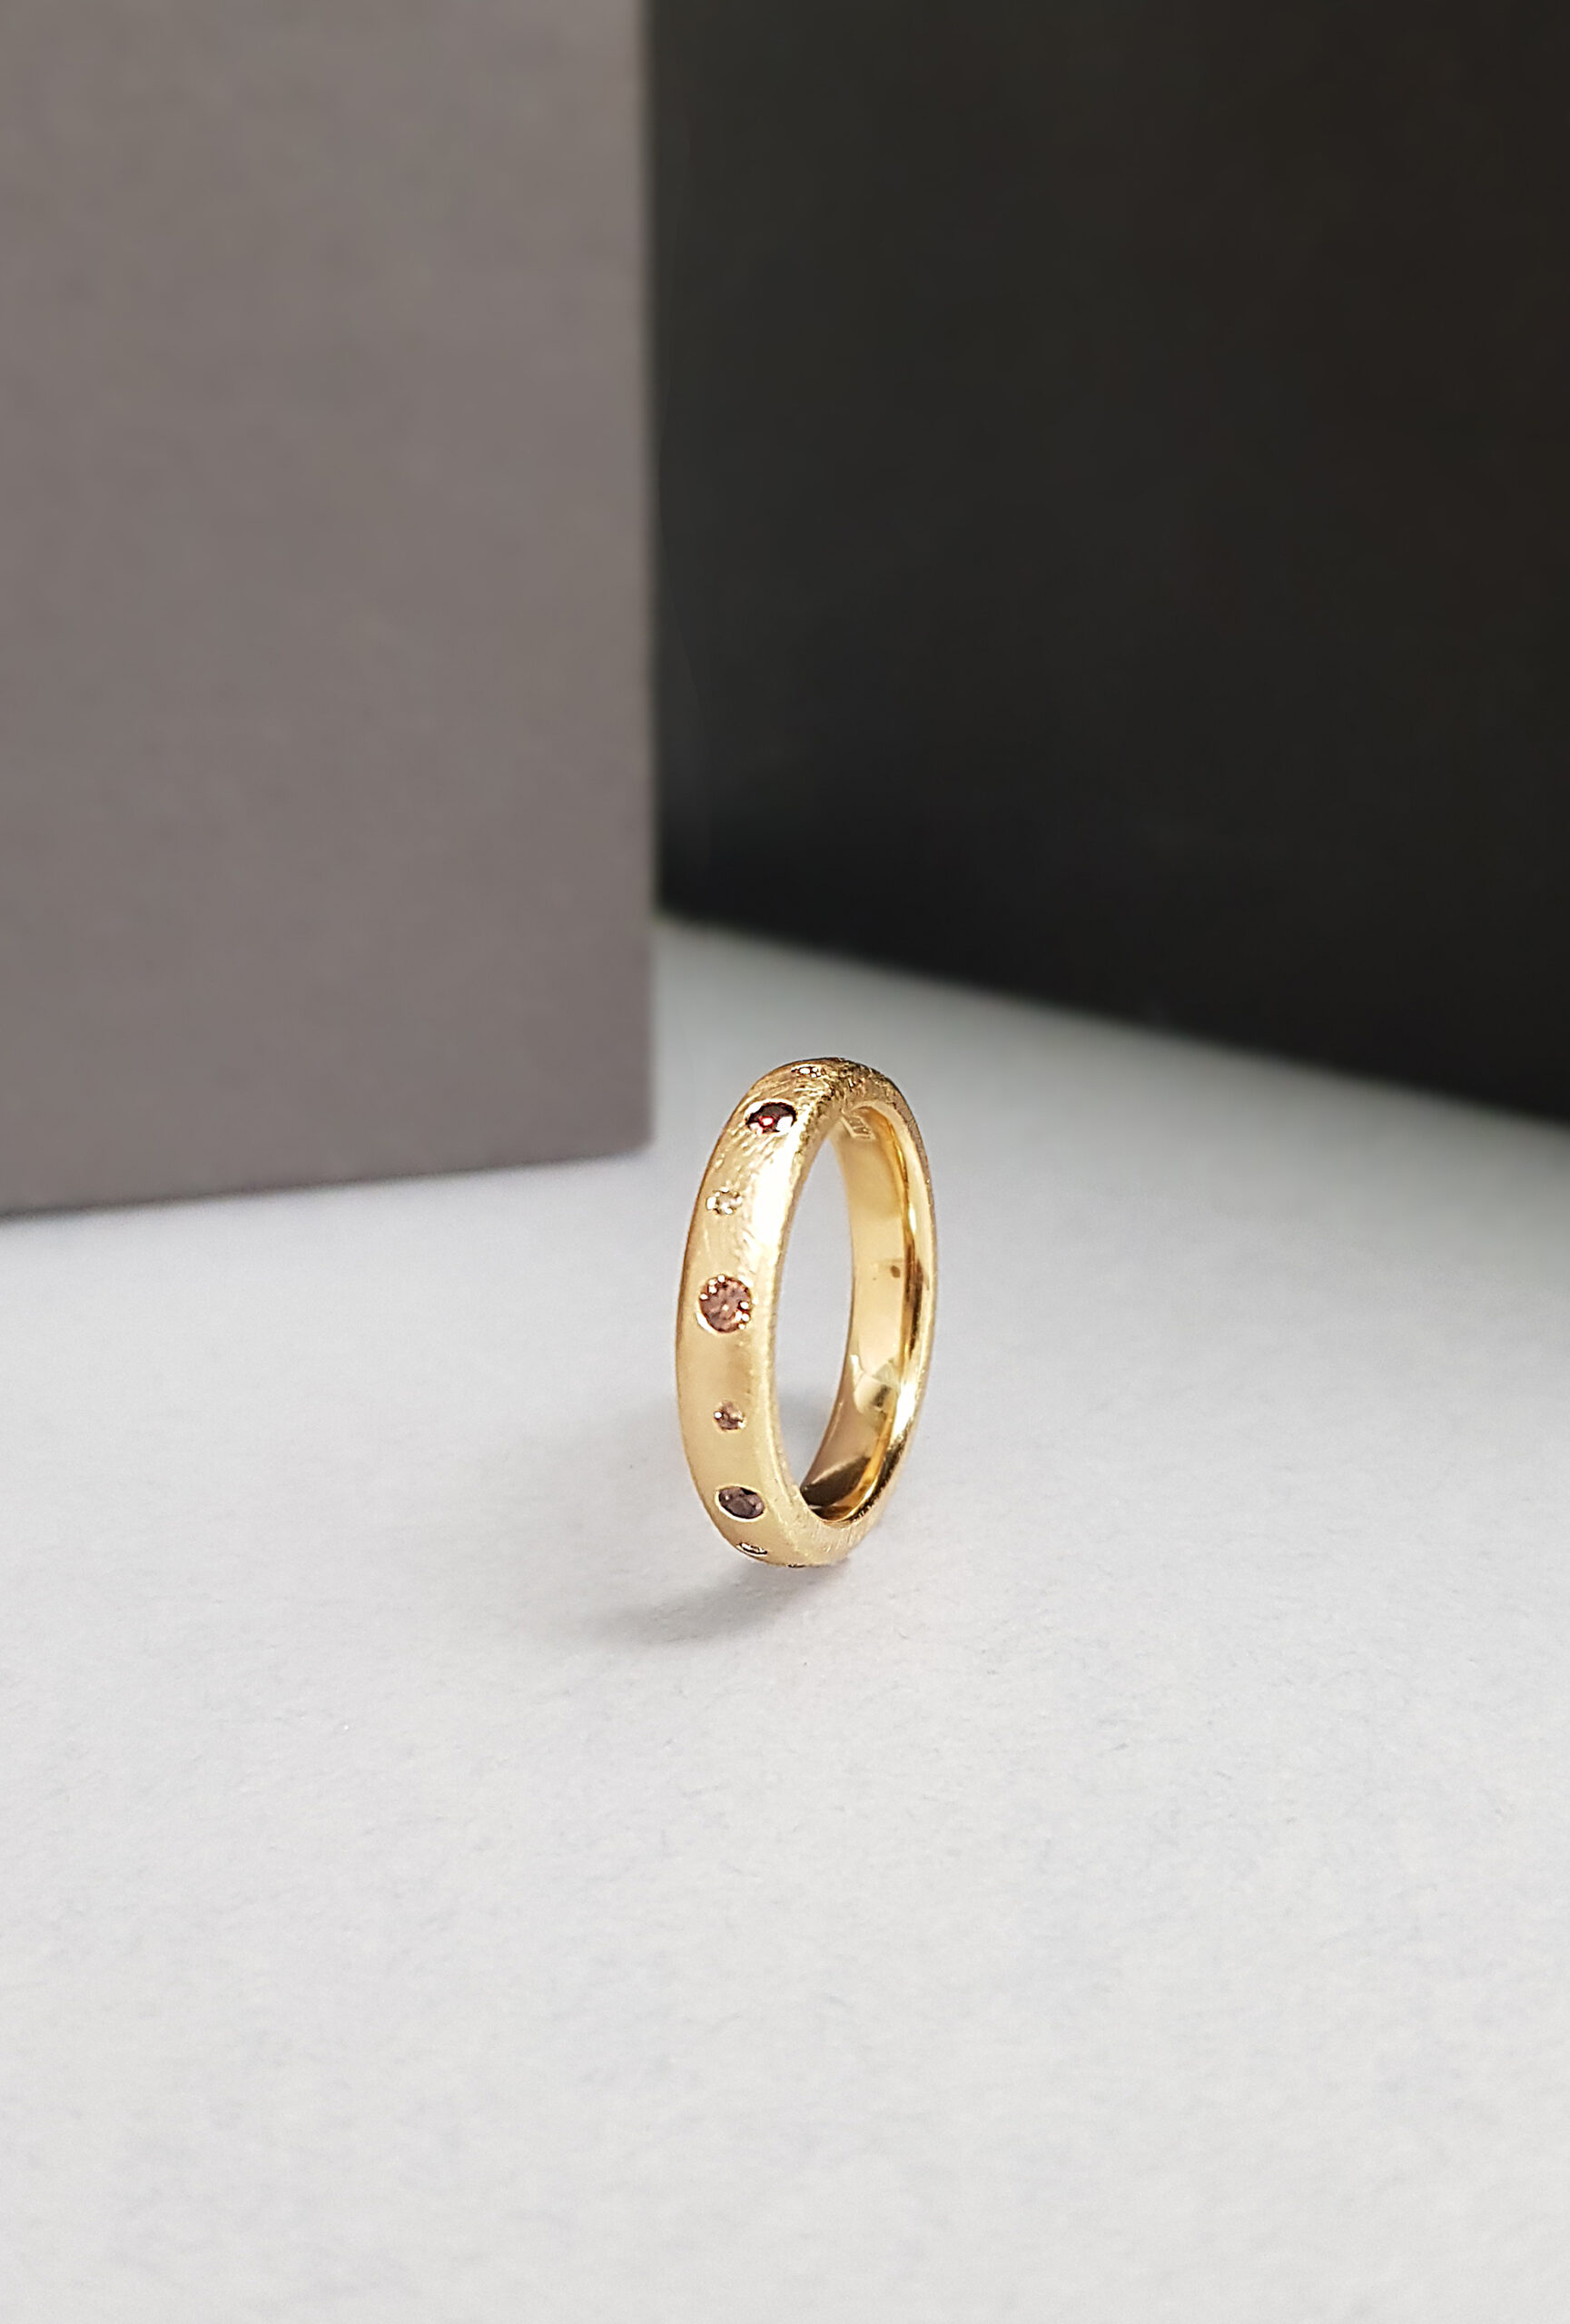 Yellow gold ring set with cognac and champagne diamonds standing upright on a white , grey and black background.